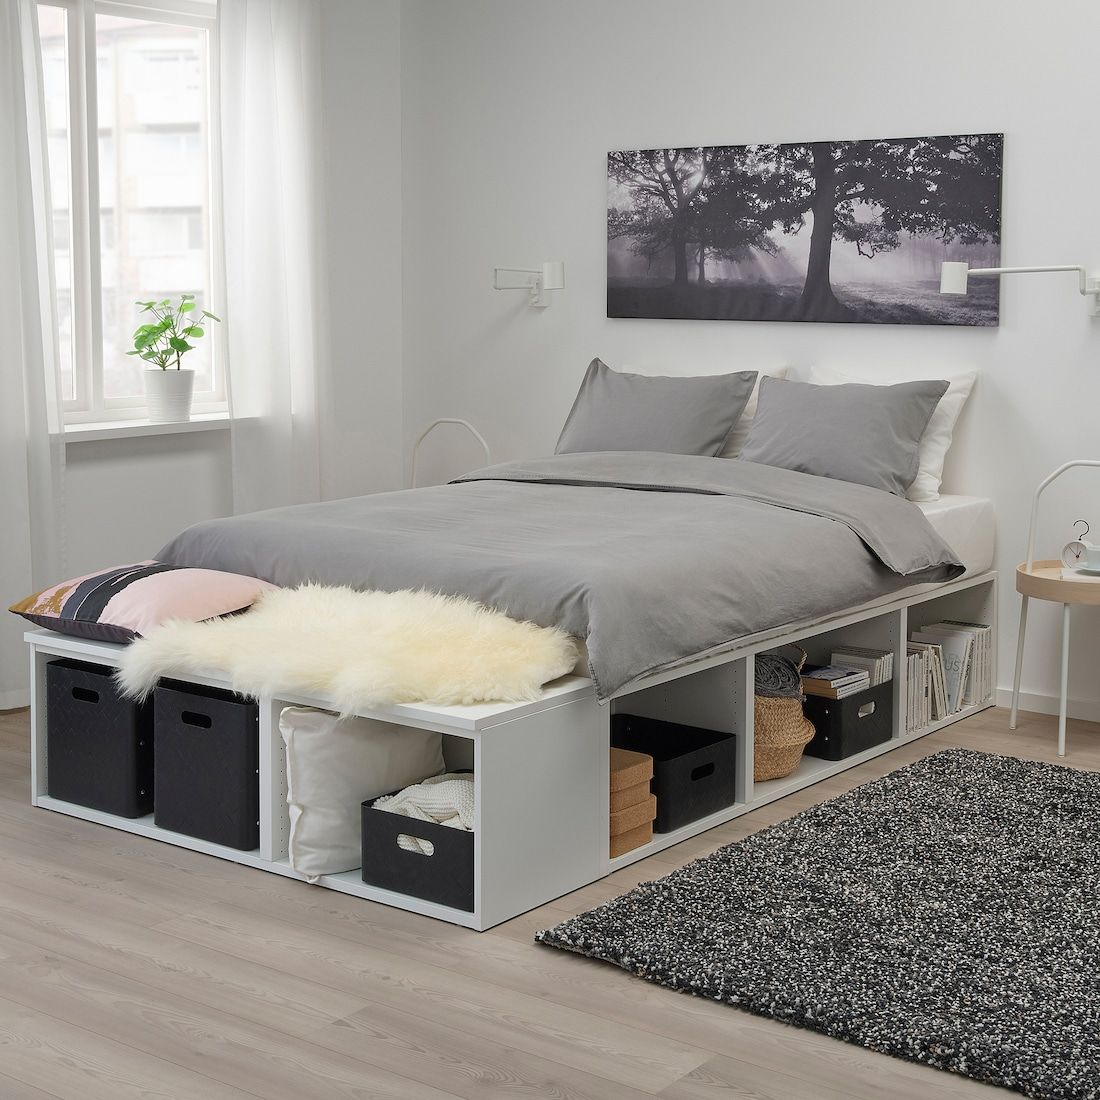 PLATSA Bed frame with storage white 140x200 cm in 2020